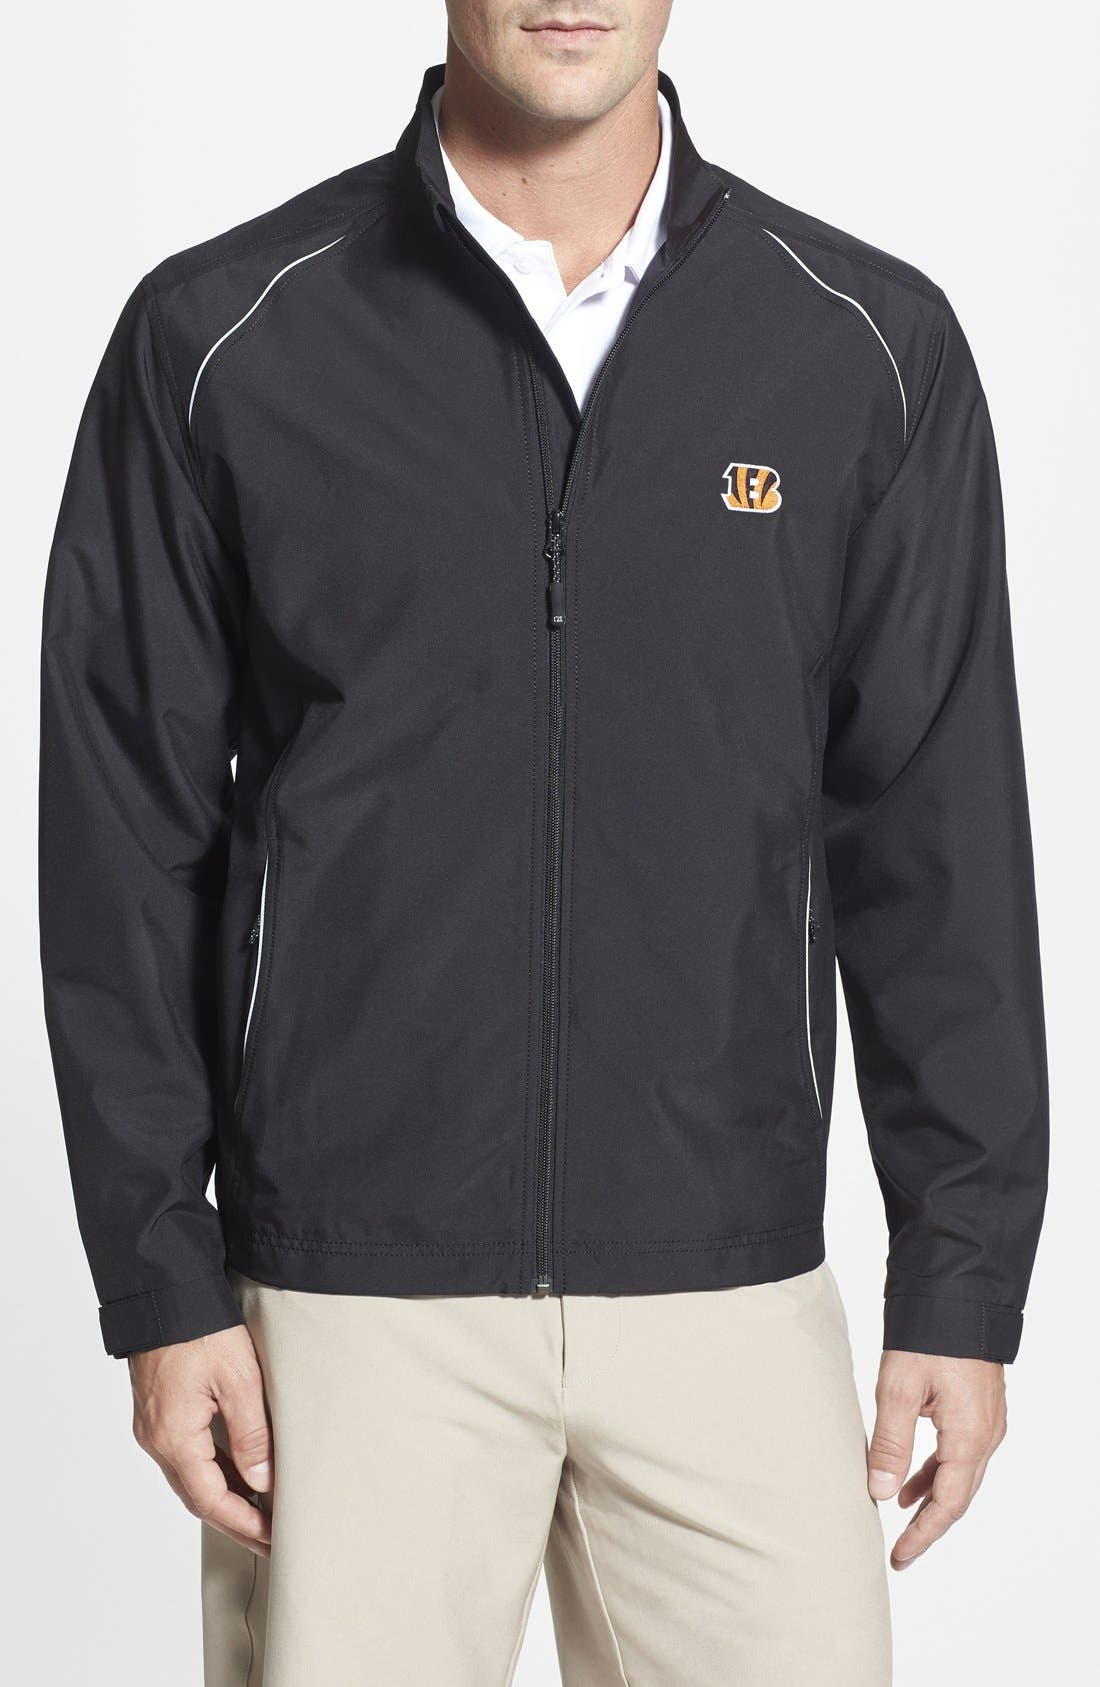 Main Image - Cutter & Buck 'Cincinnati Bengals - Beacon' WeatherTec Wind & Water Resistant Jacket